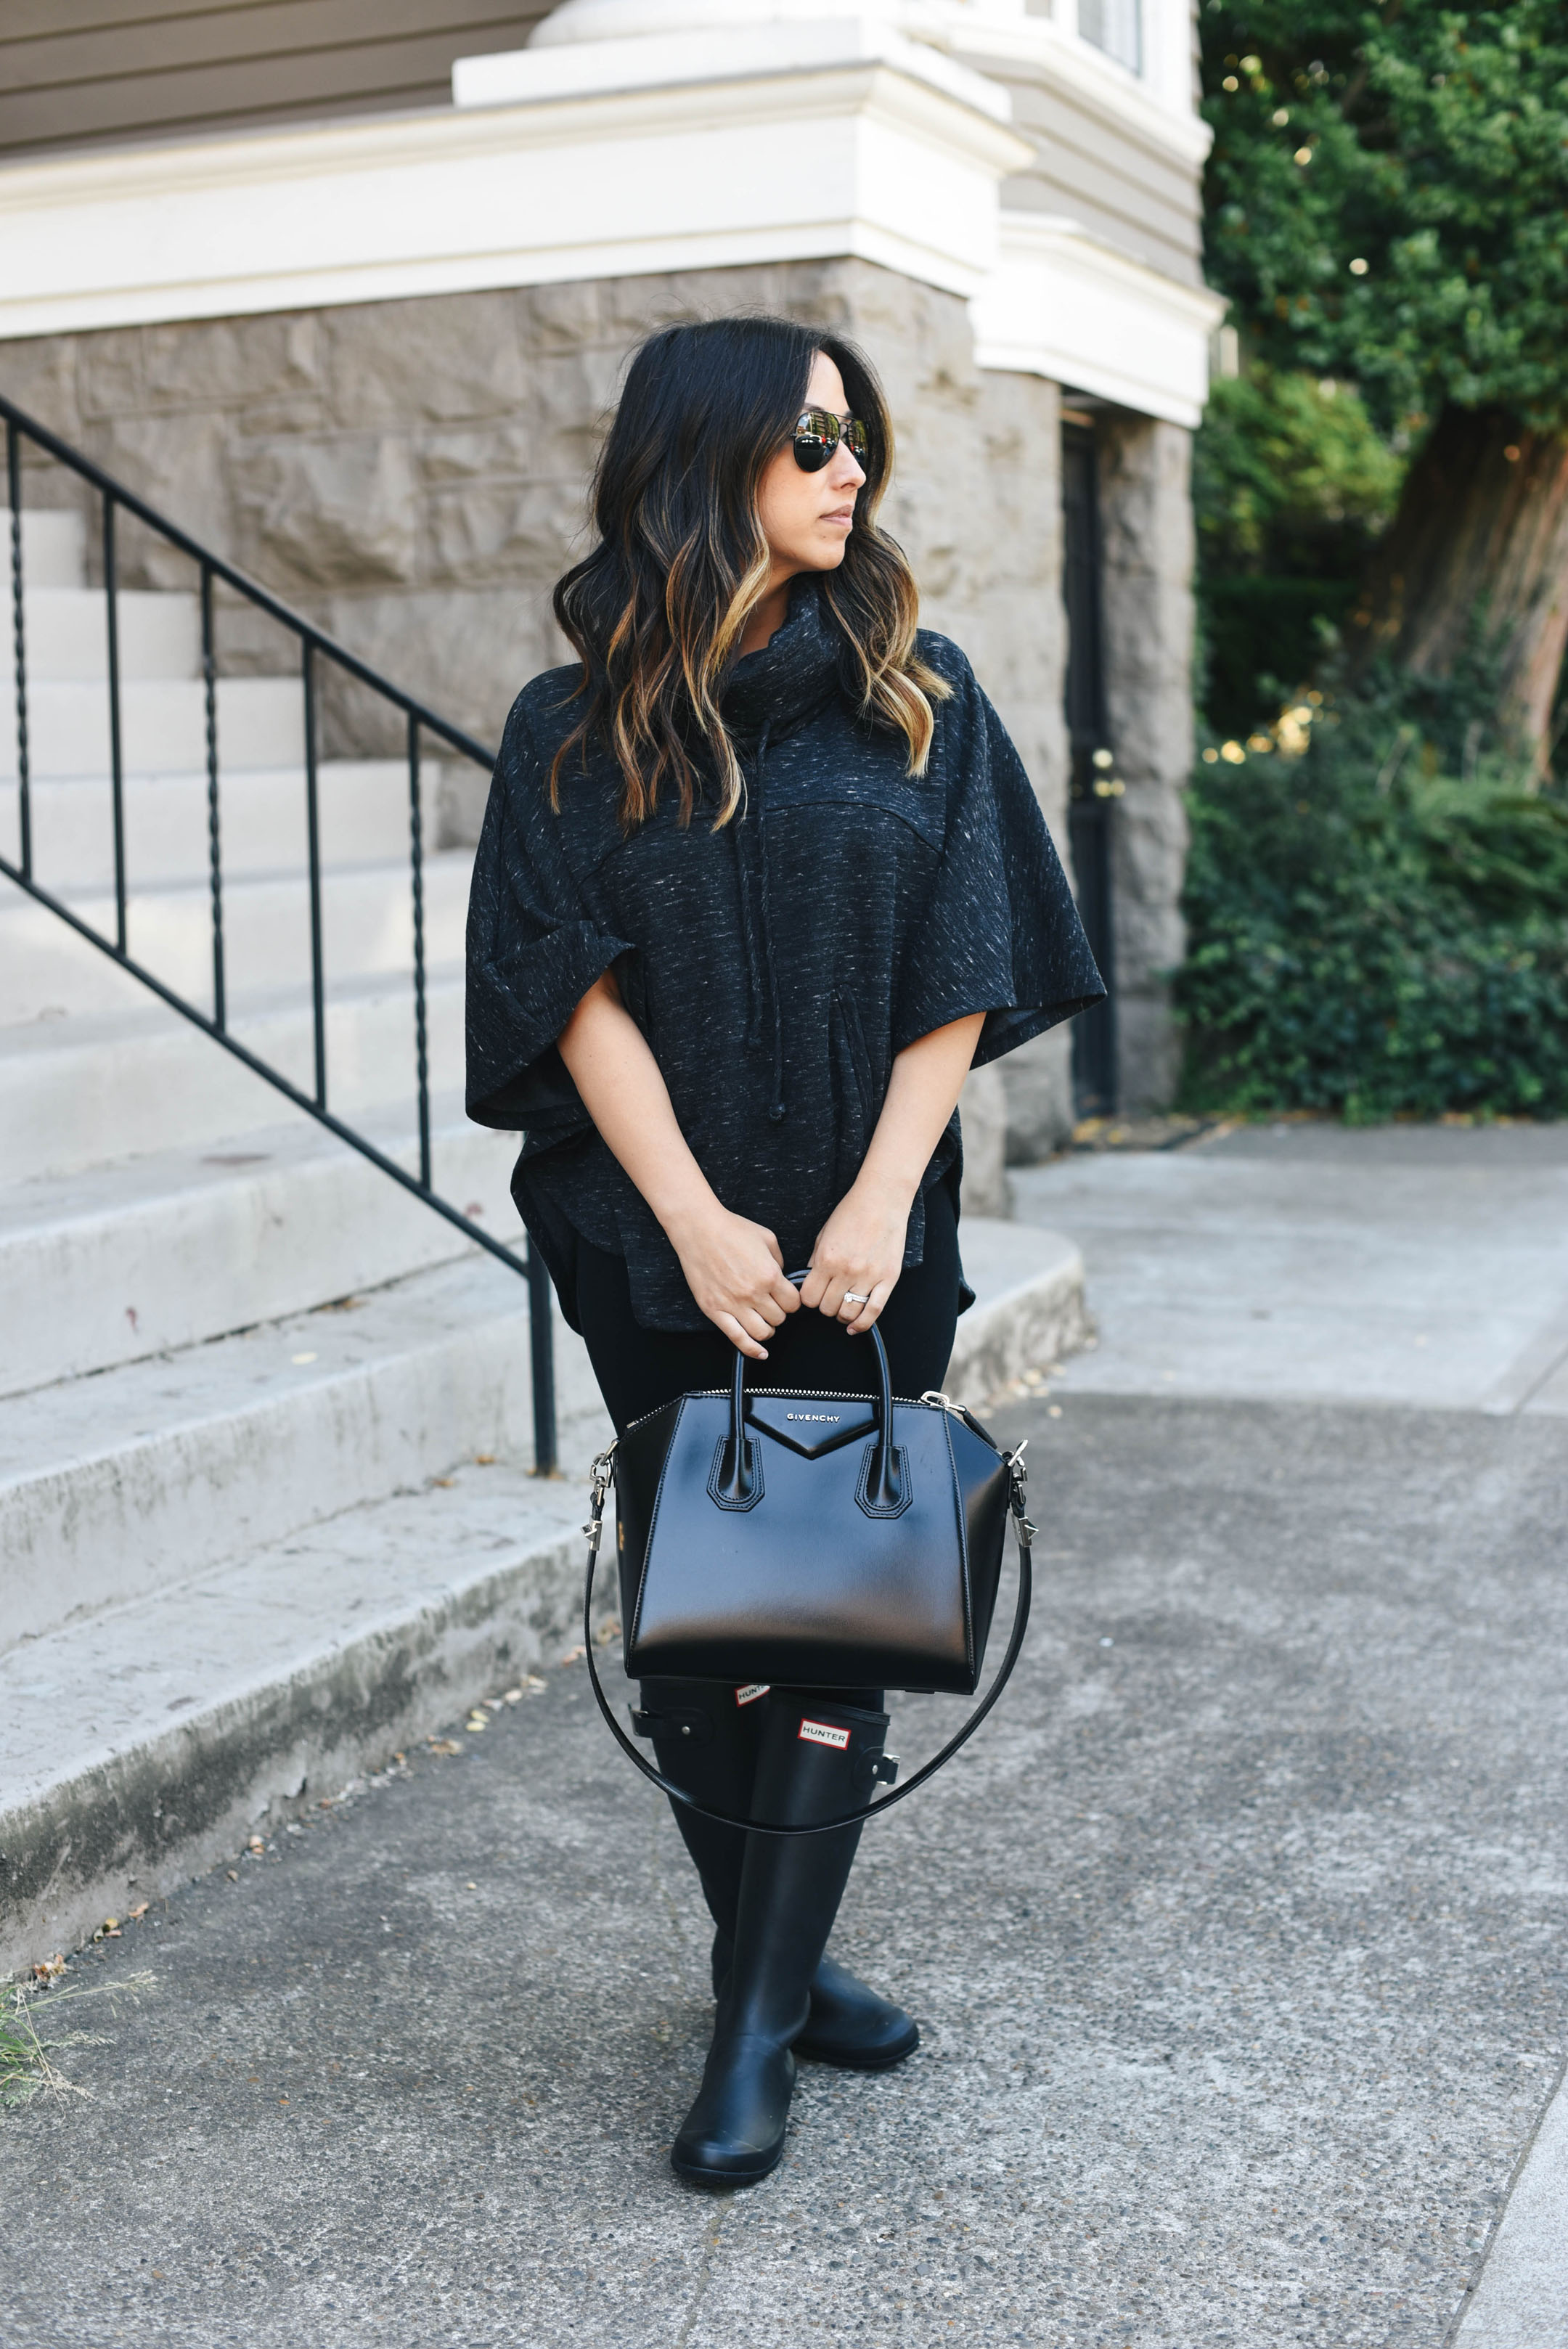 Best ponchos for petites